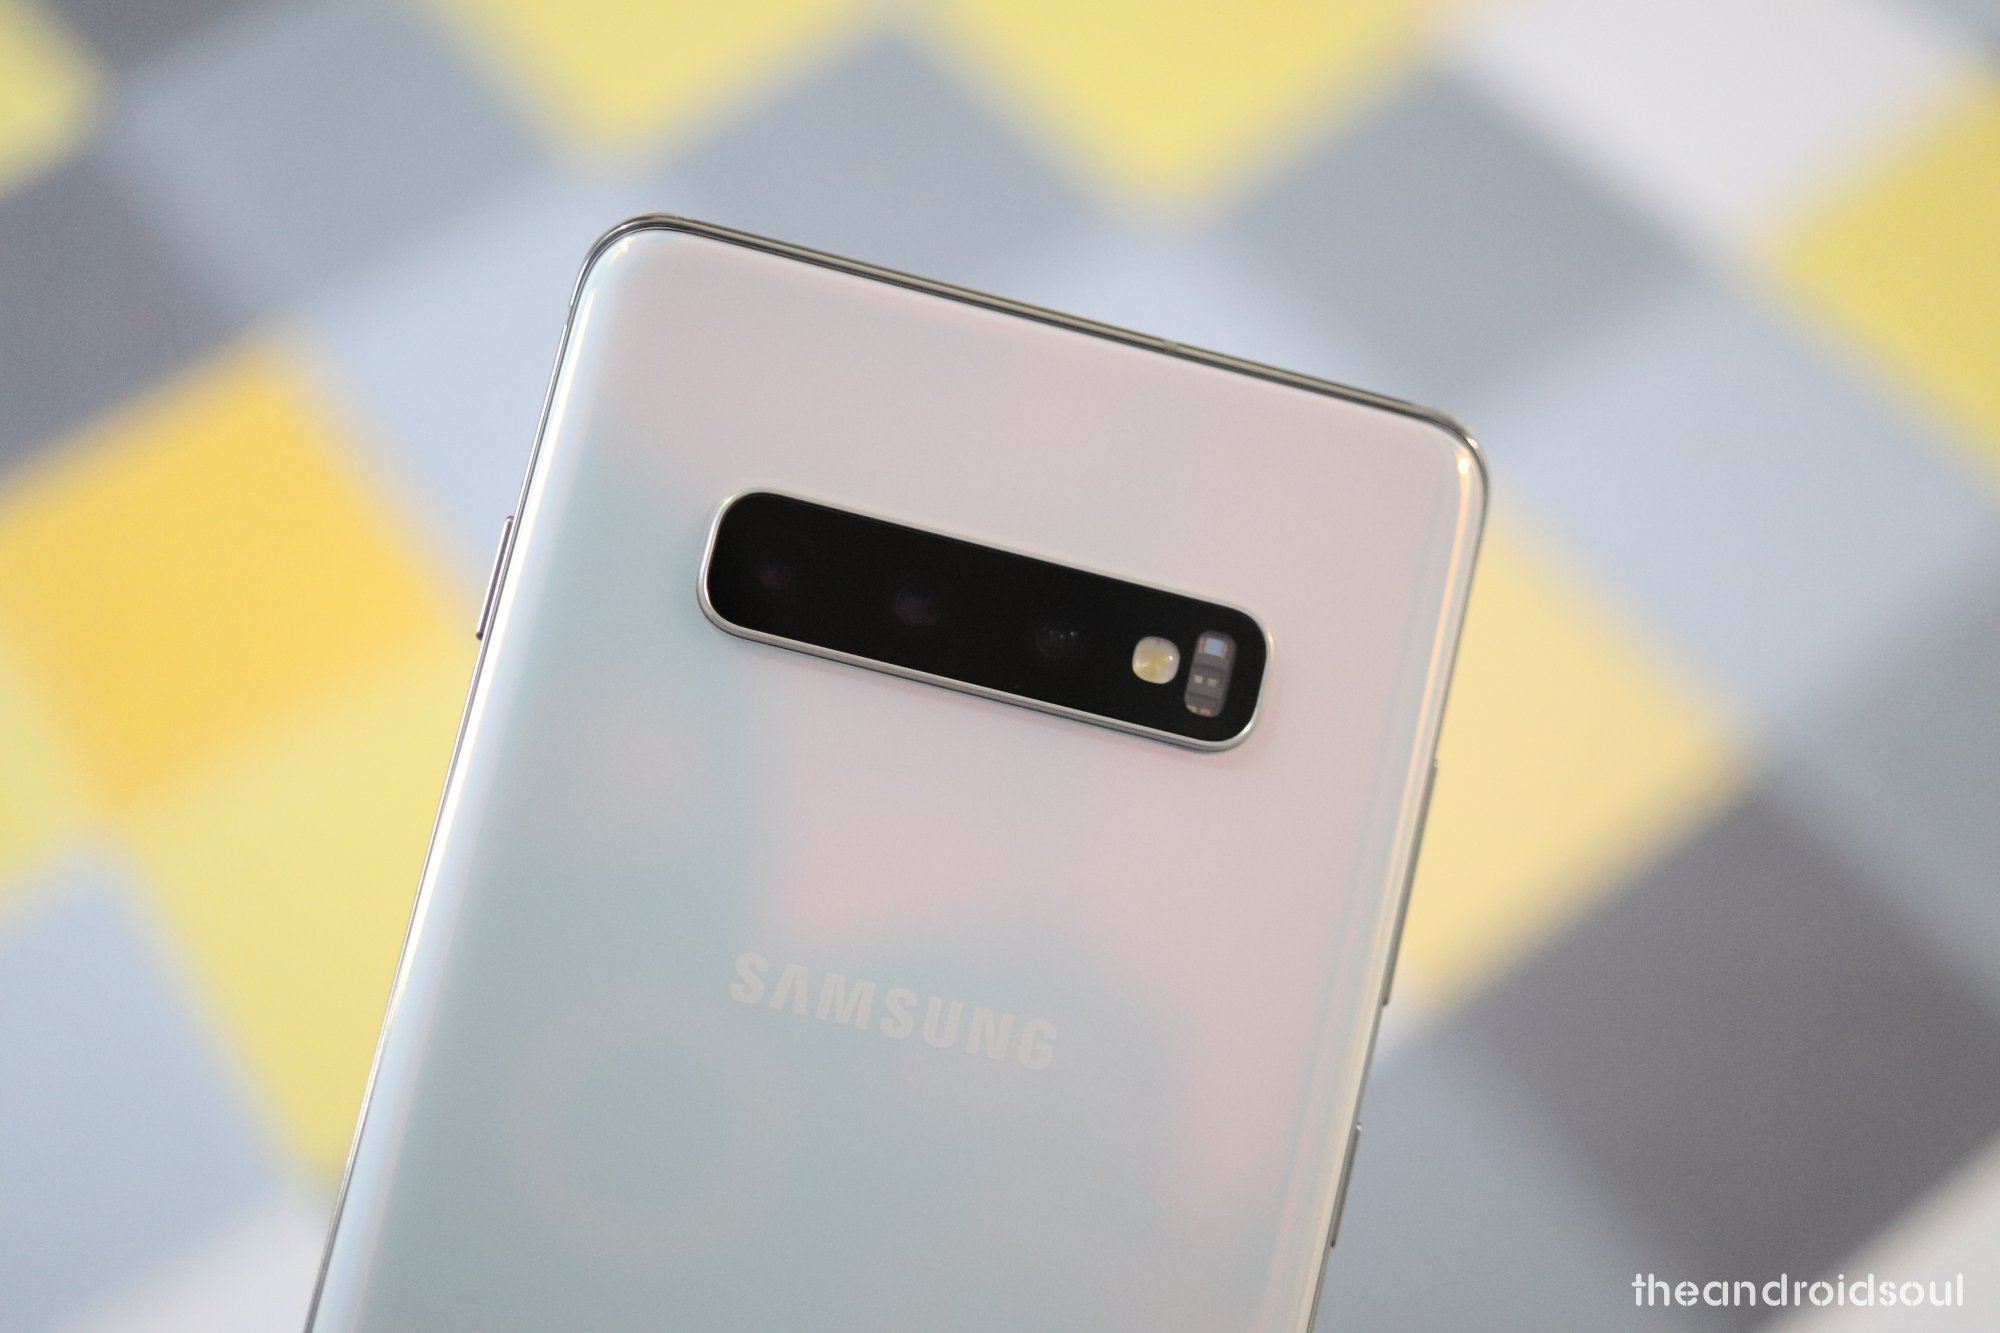 Galaxy S10 Android 10 update